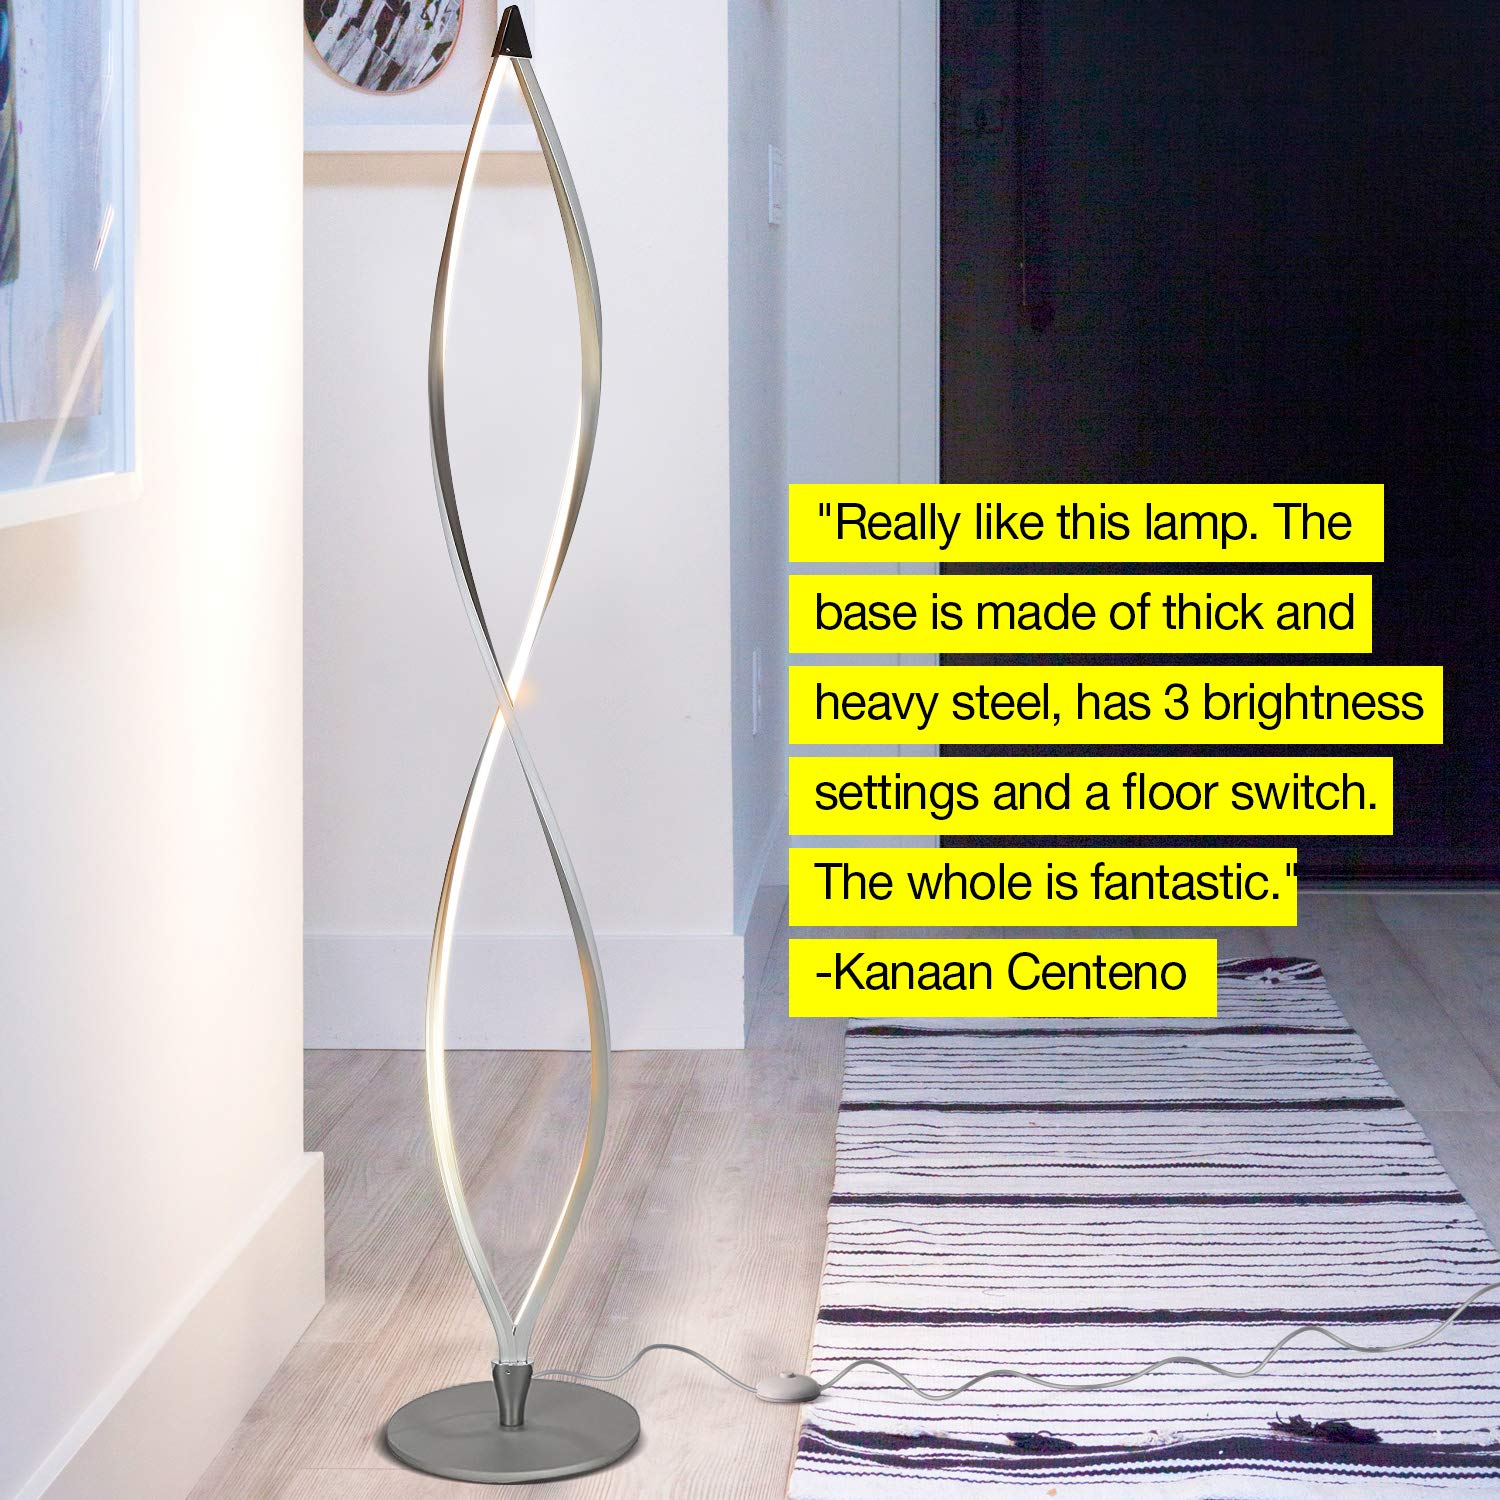 Brightech Twist - Modern LED Living Room Floor Lamp - Bright Contemporary Standing Light - Built in Dimmer Switch with 3 Brightness Settings - Cool, Futuristic Lighting - Silver by Brightech (Image #8)